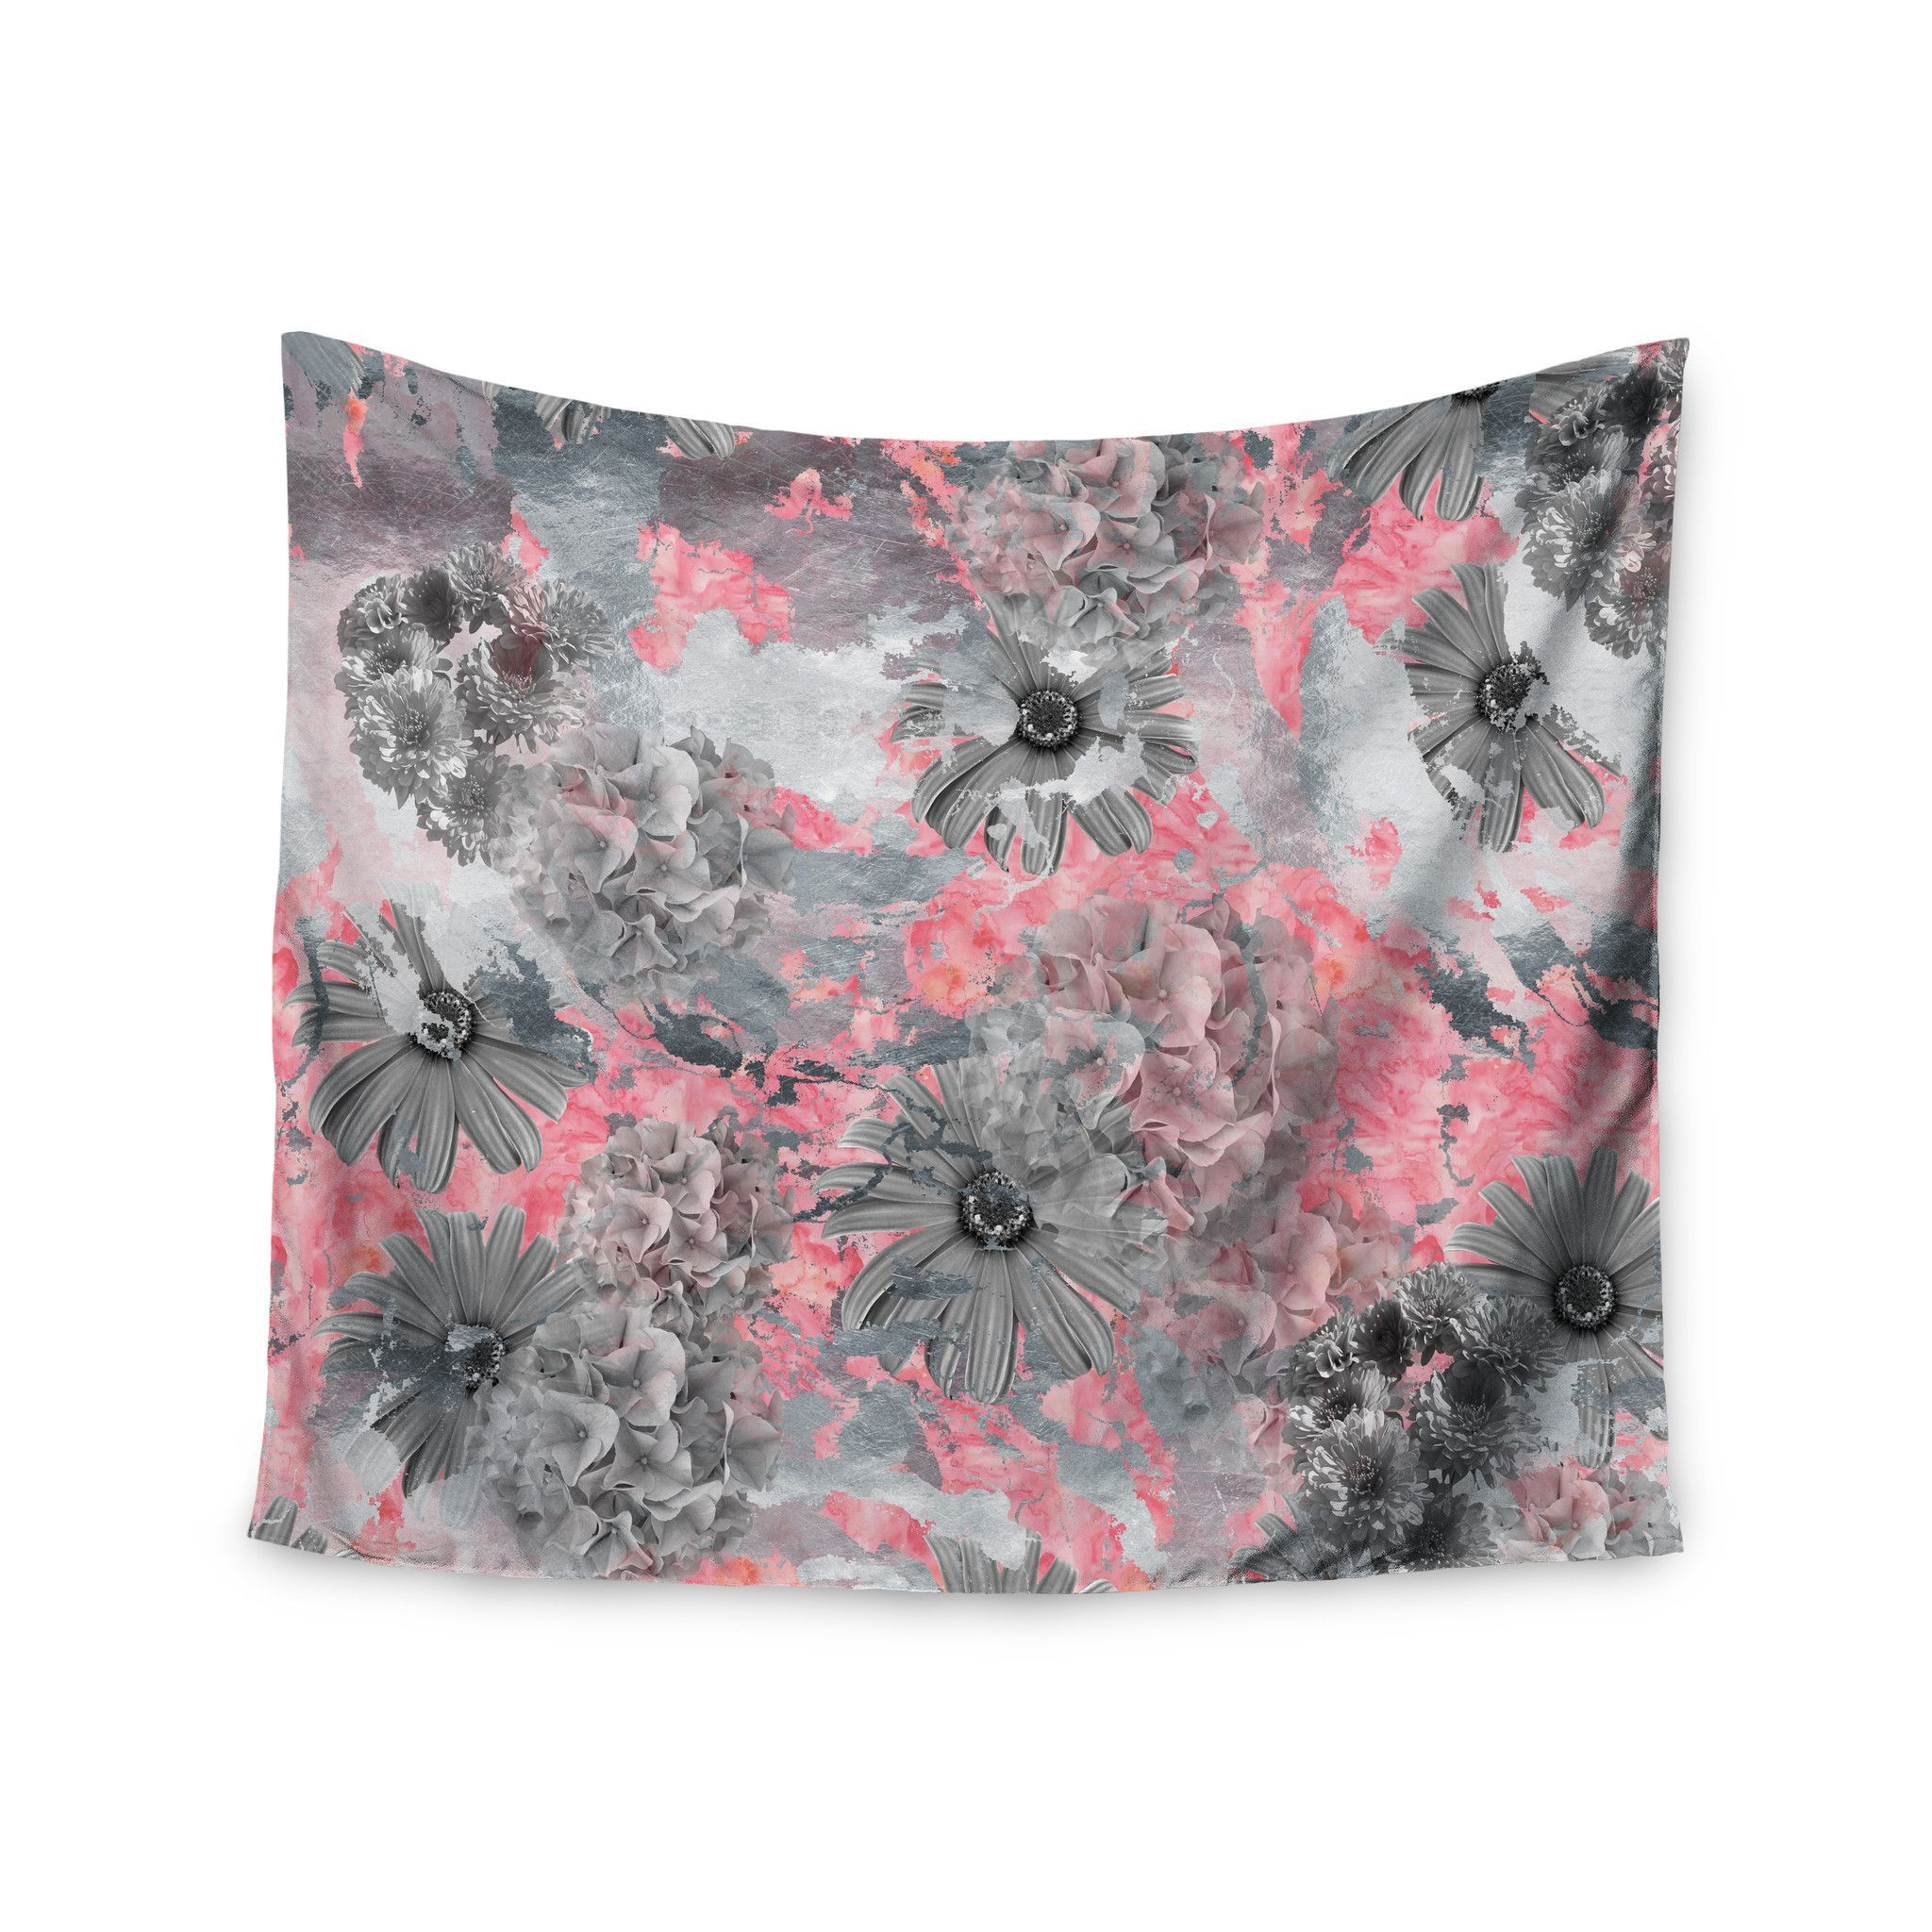 Grace The Walls Of Your Home With Elegant Tapestries! These Wonderful  Pieces Are A Great